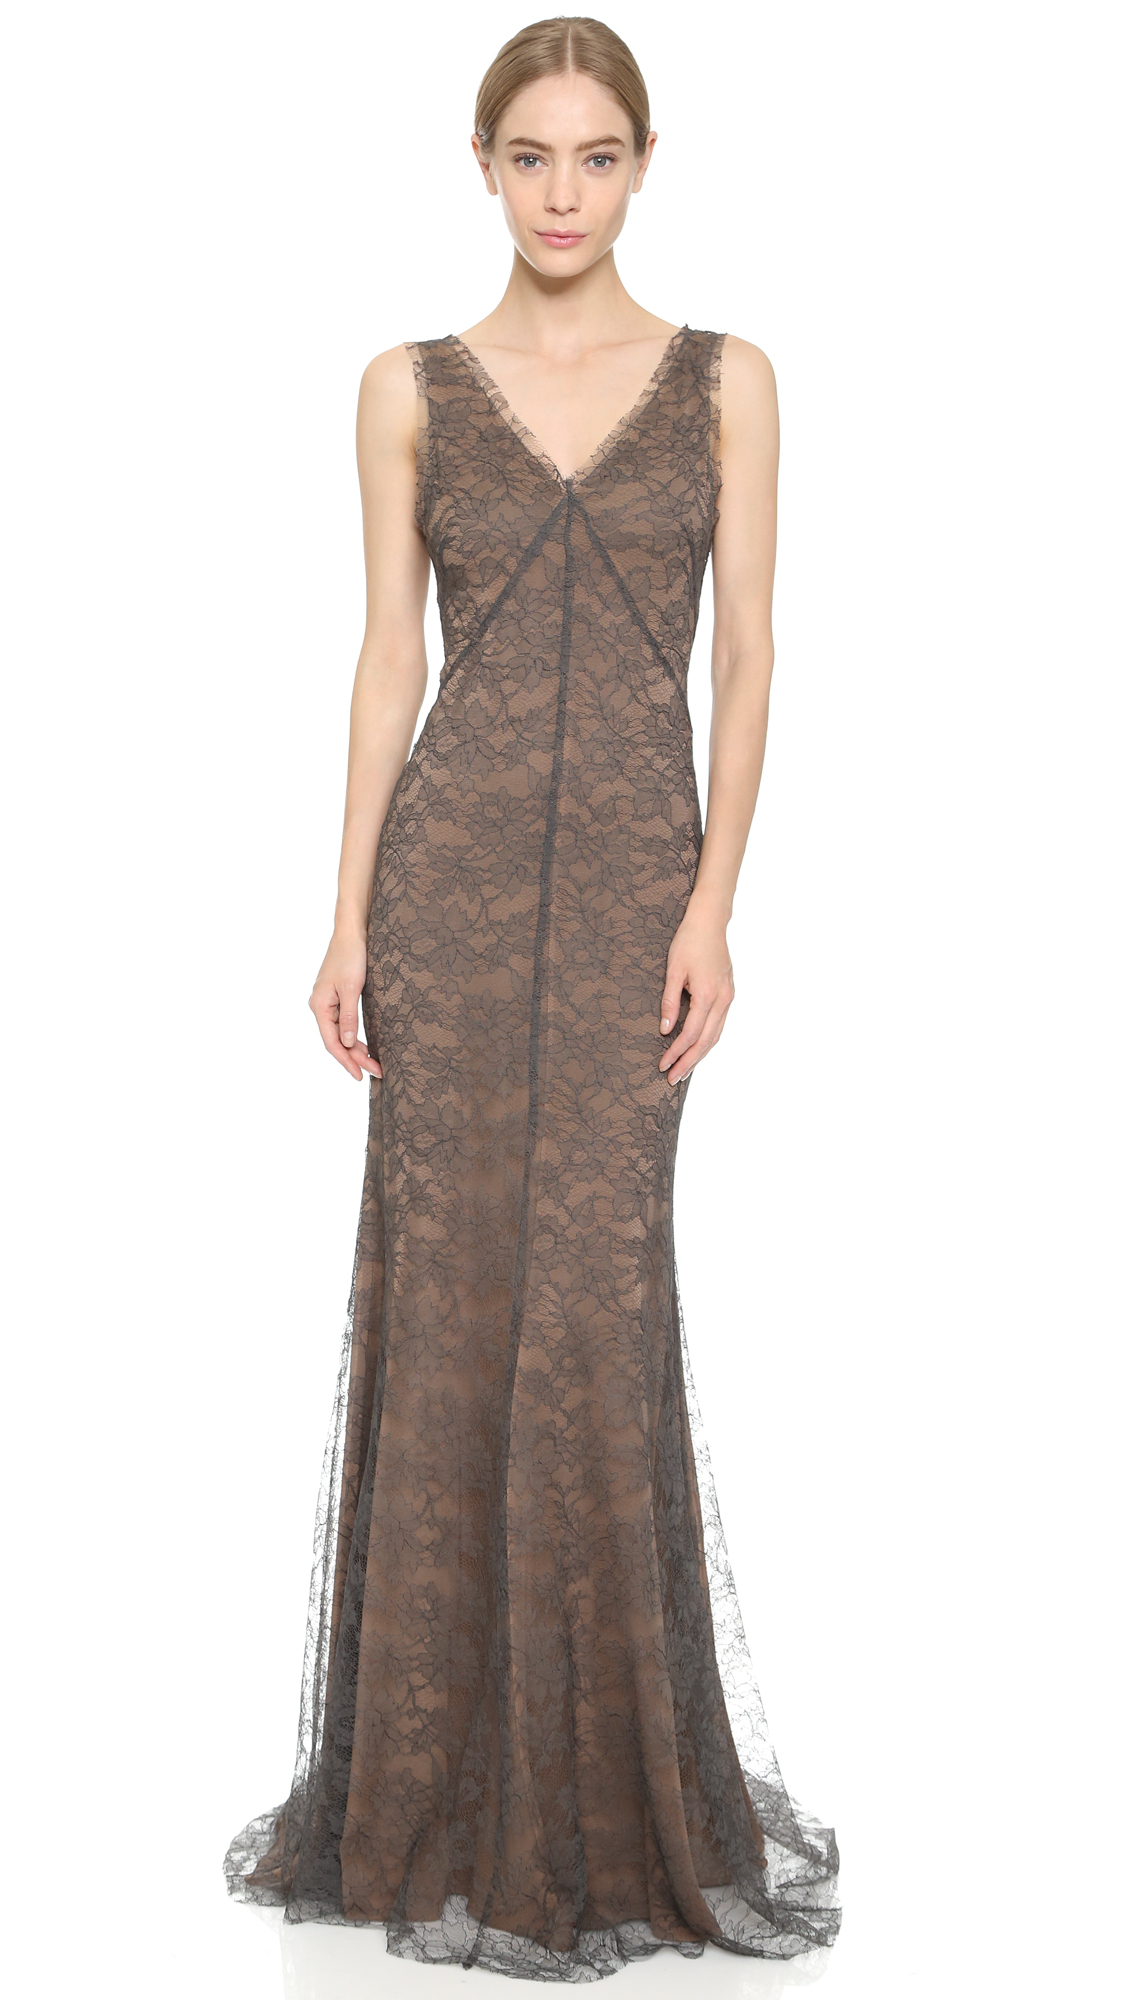 Lyst - Vera Wang Collection Lace Gown - Charcoal in Gray